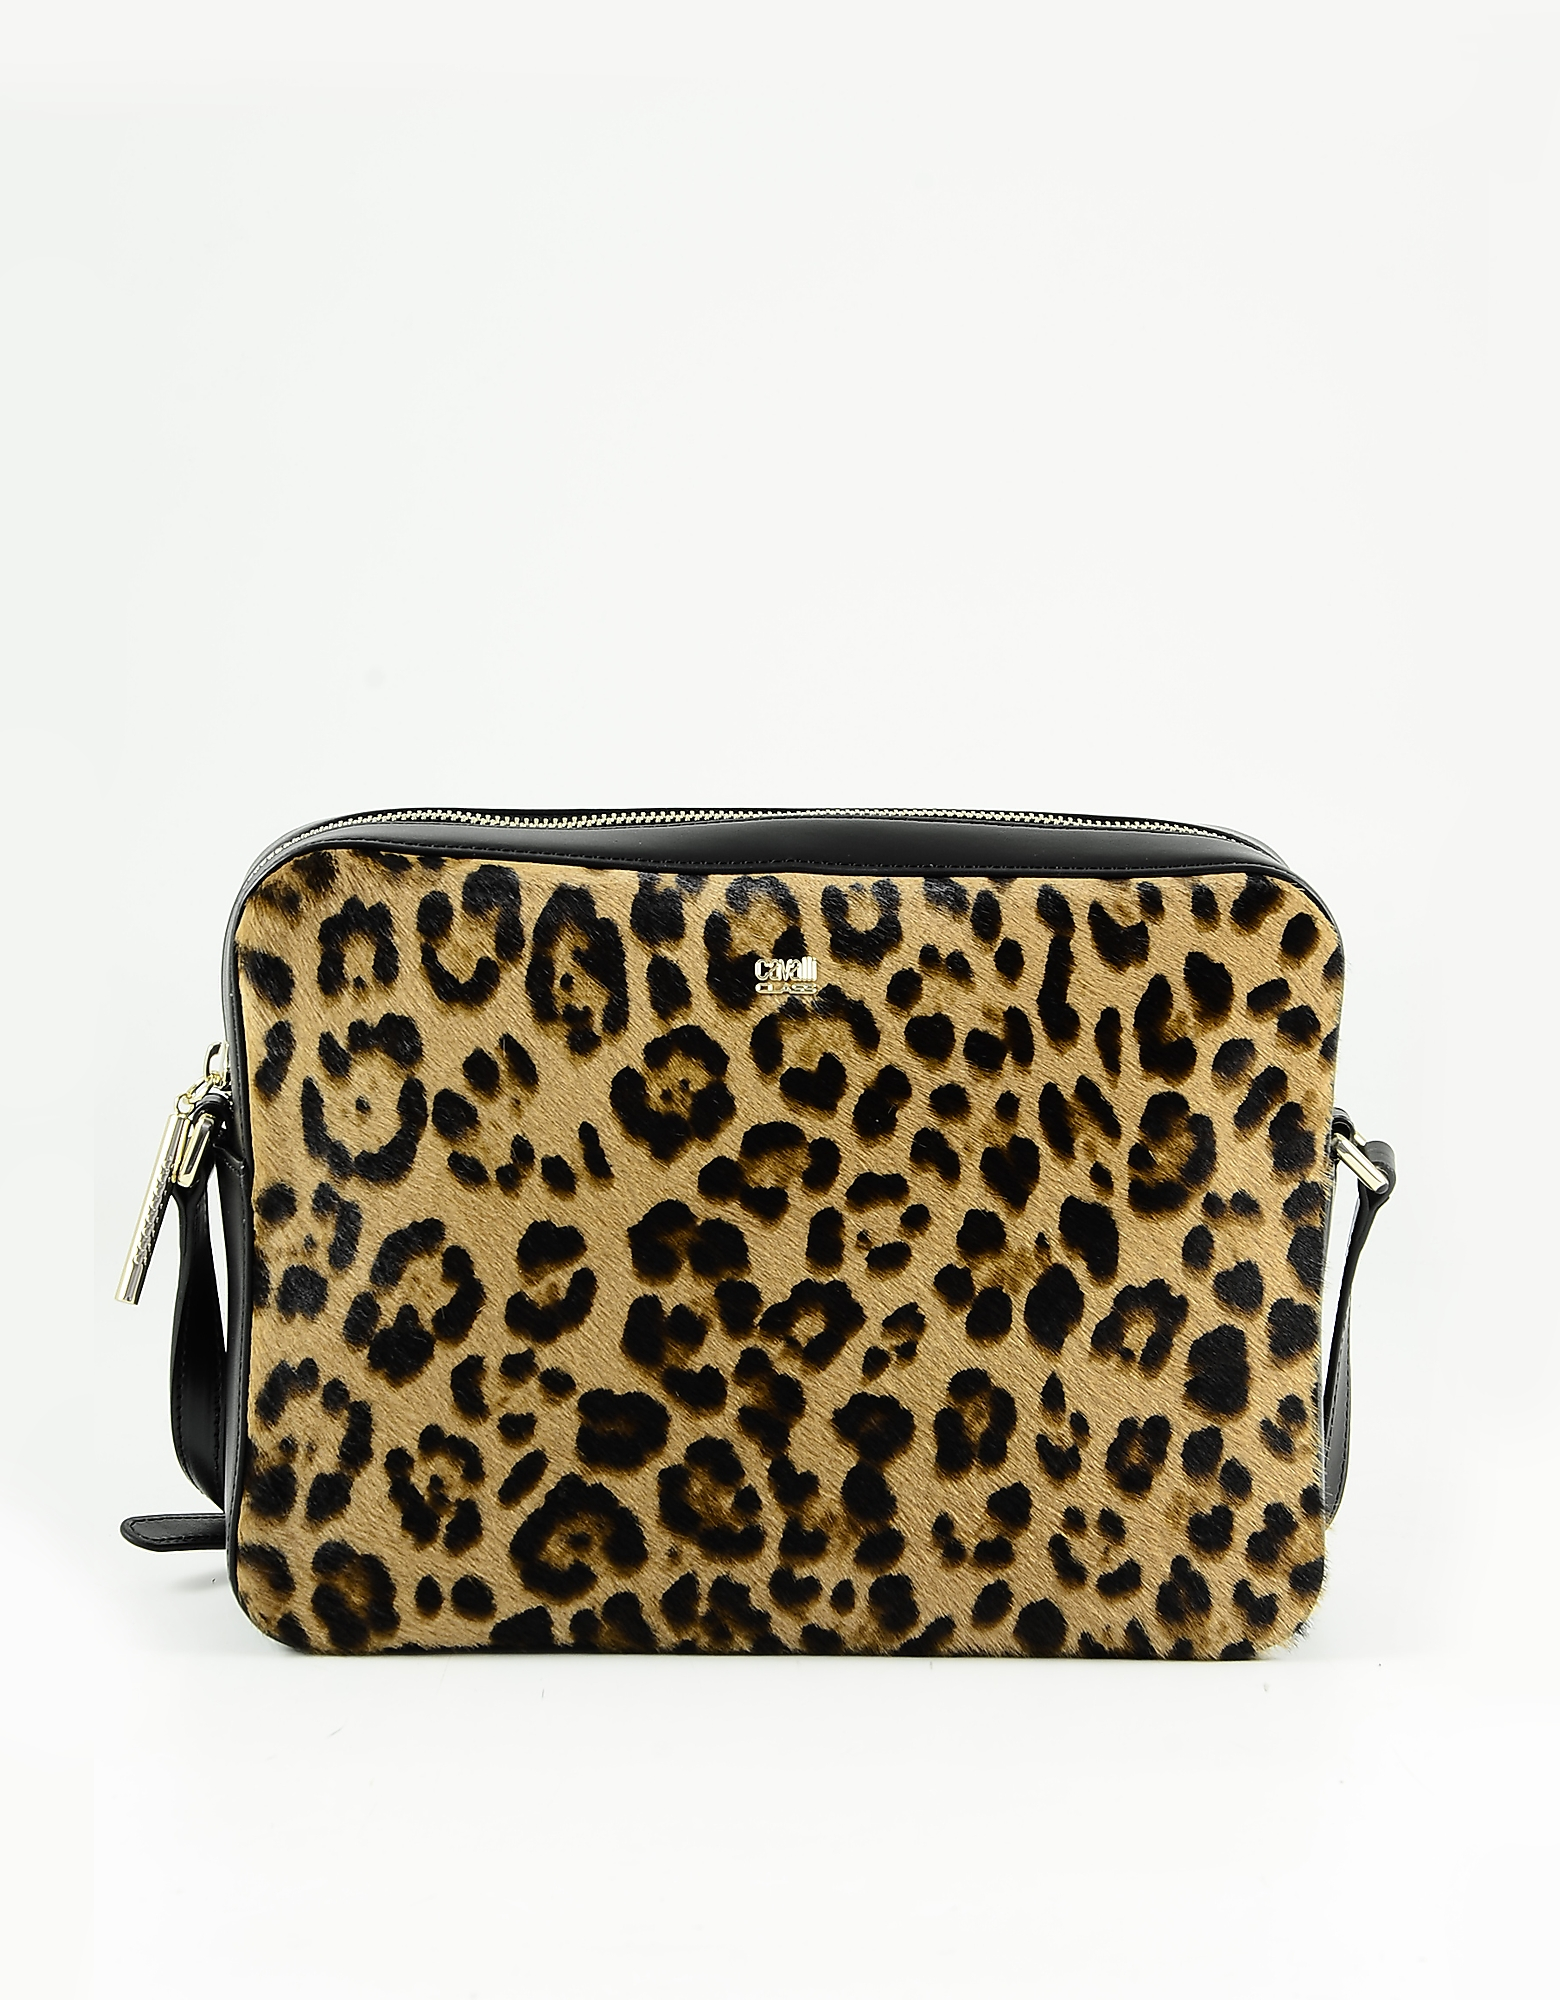 Class Roberto Cavalli Animal Print And Black Leather Shoulder Bag In Brown